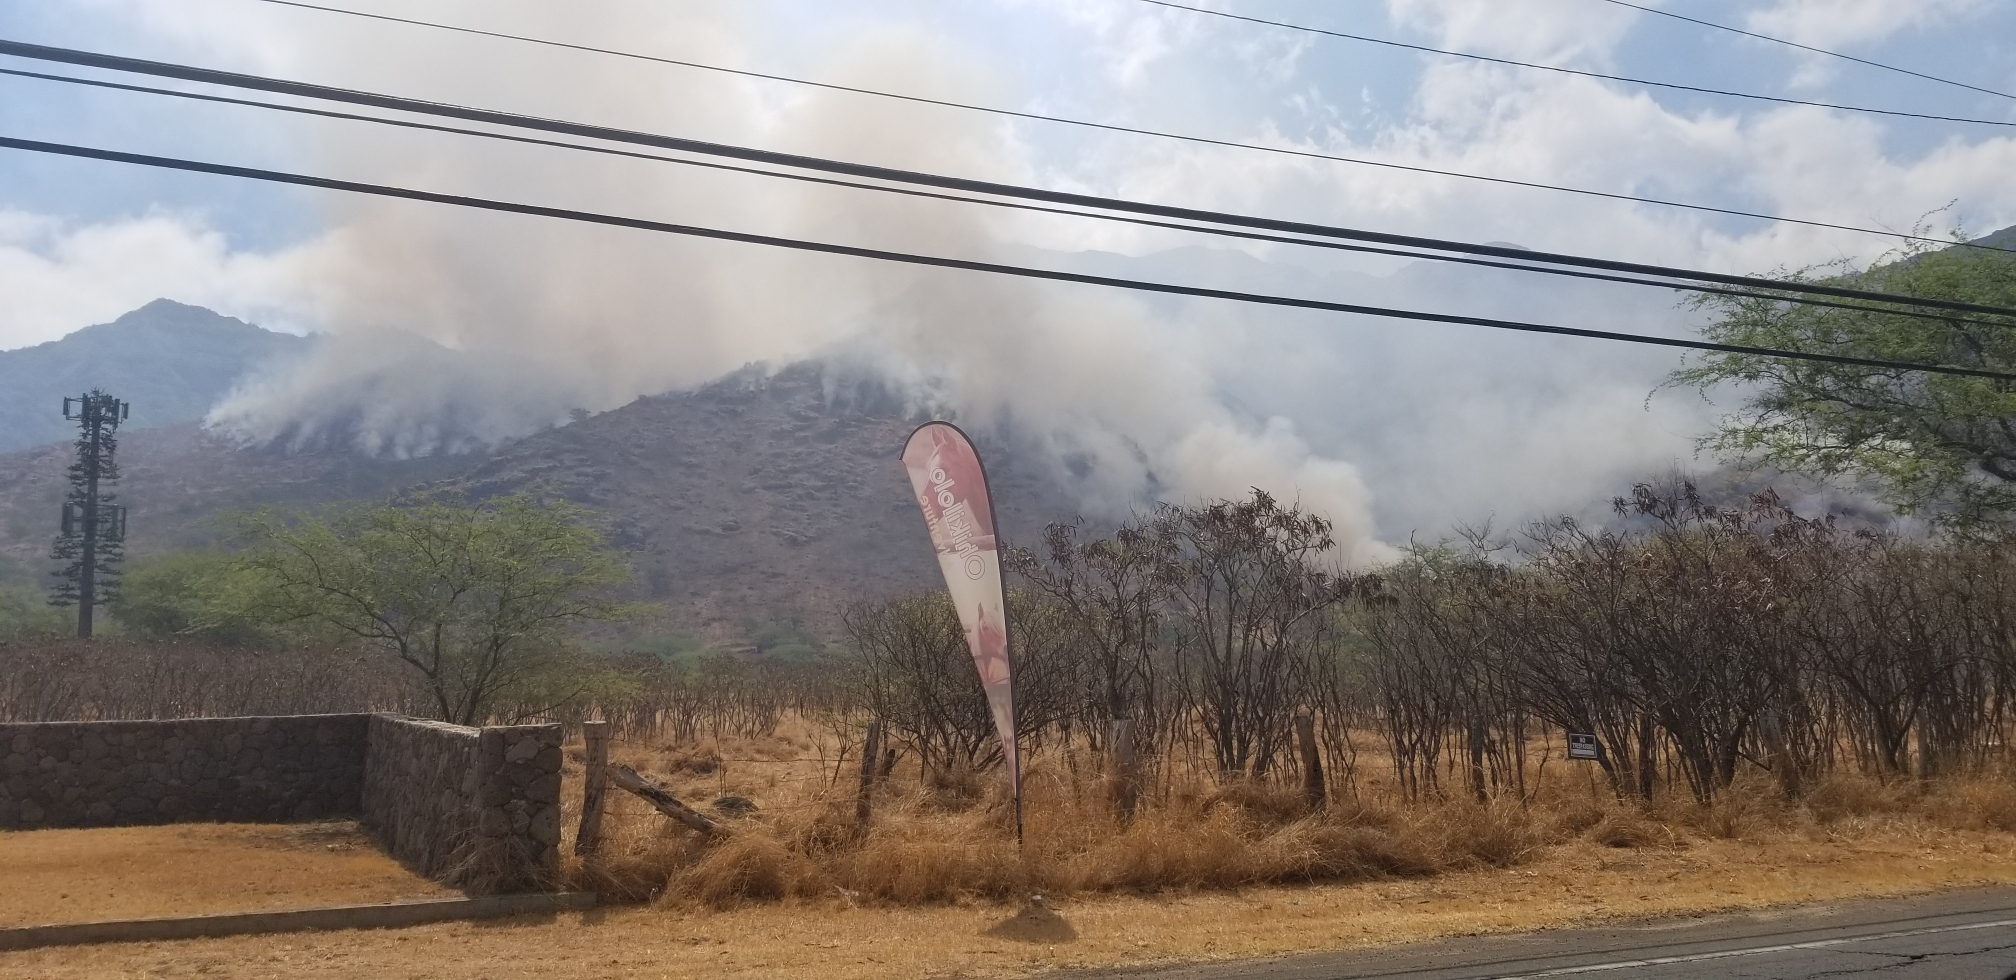 Two Fires Burning in Separate West O'ahu Forest Reserves